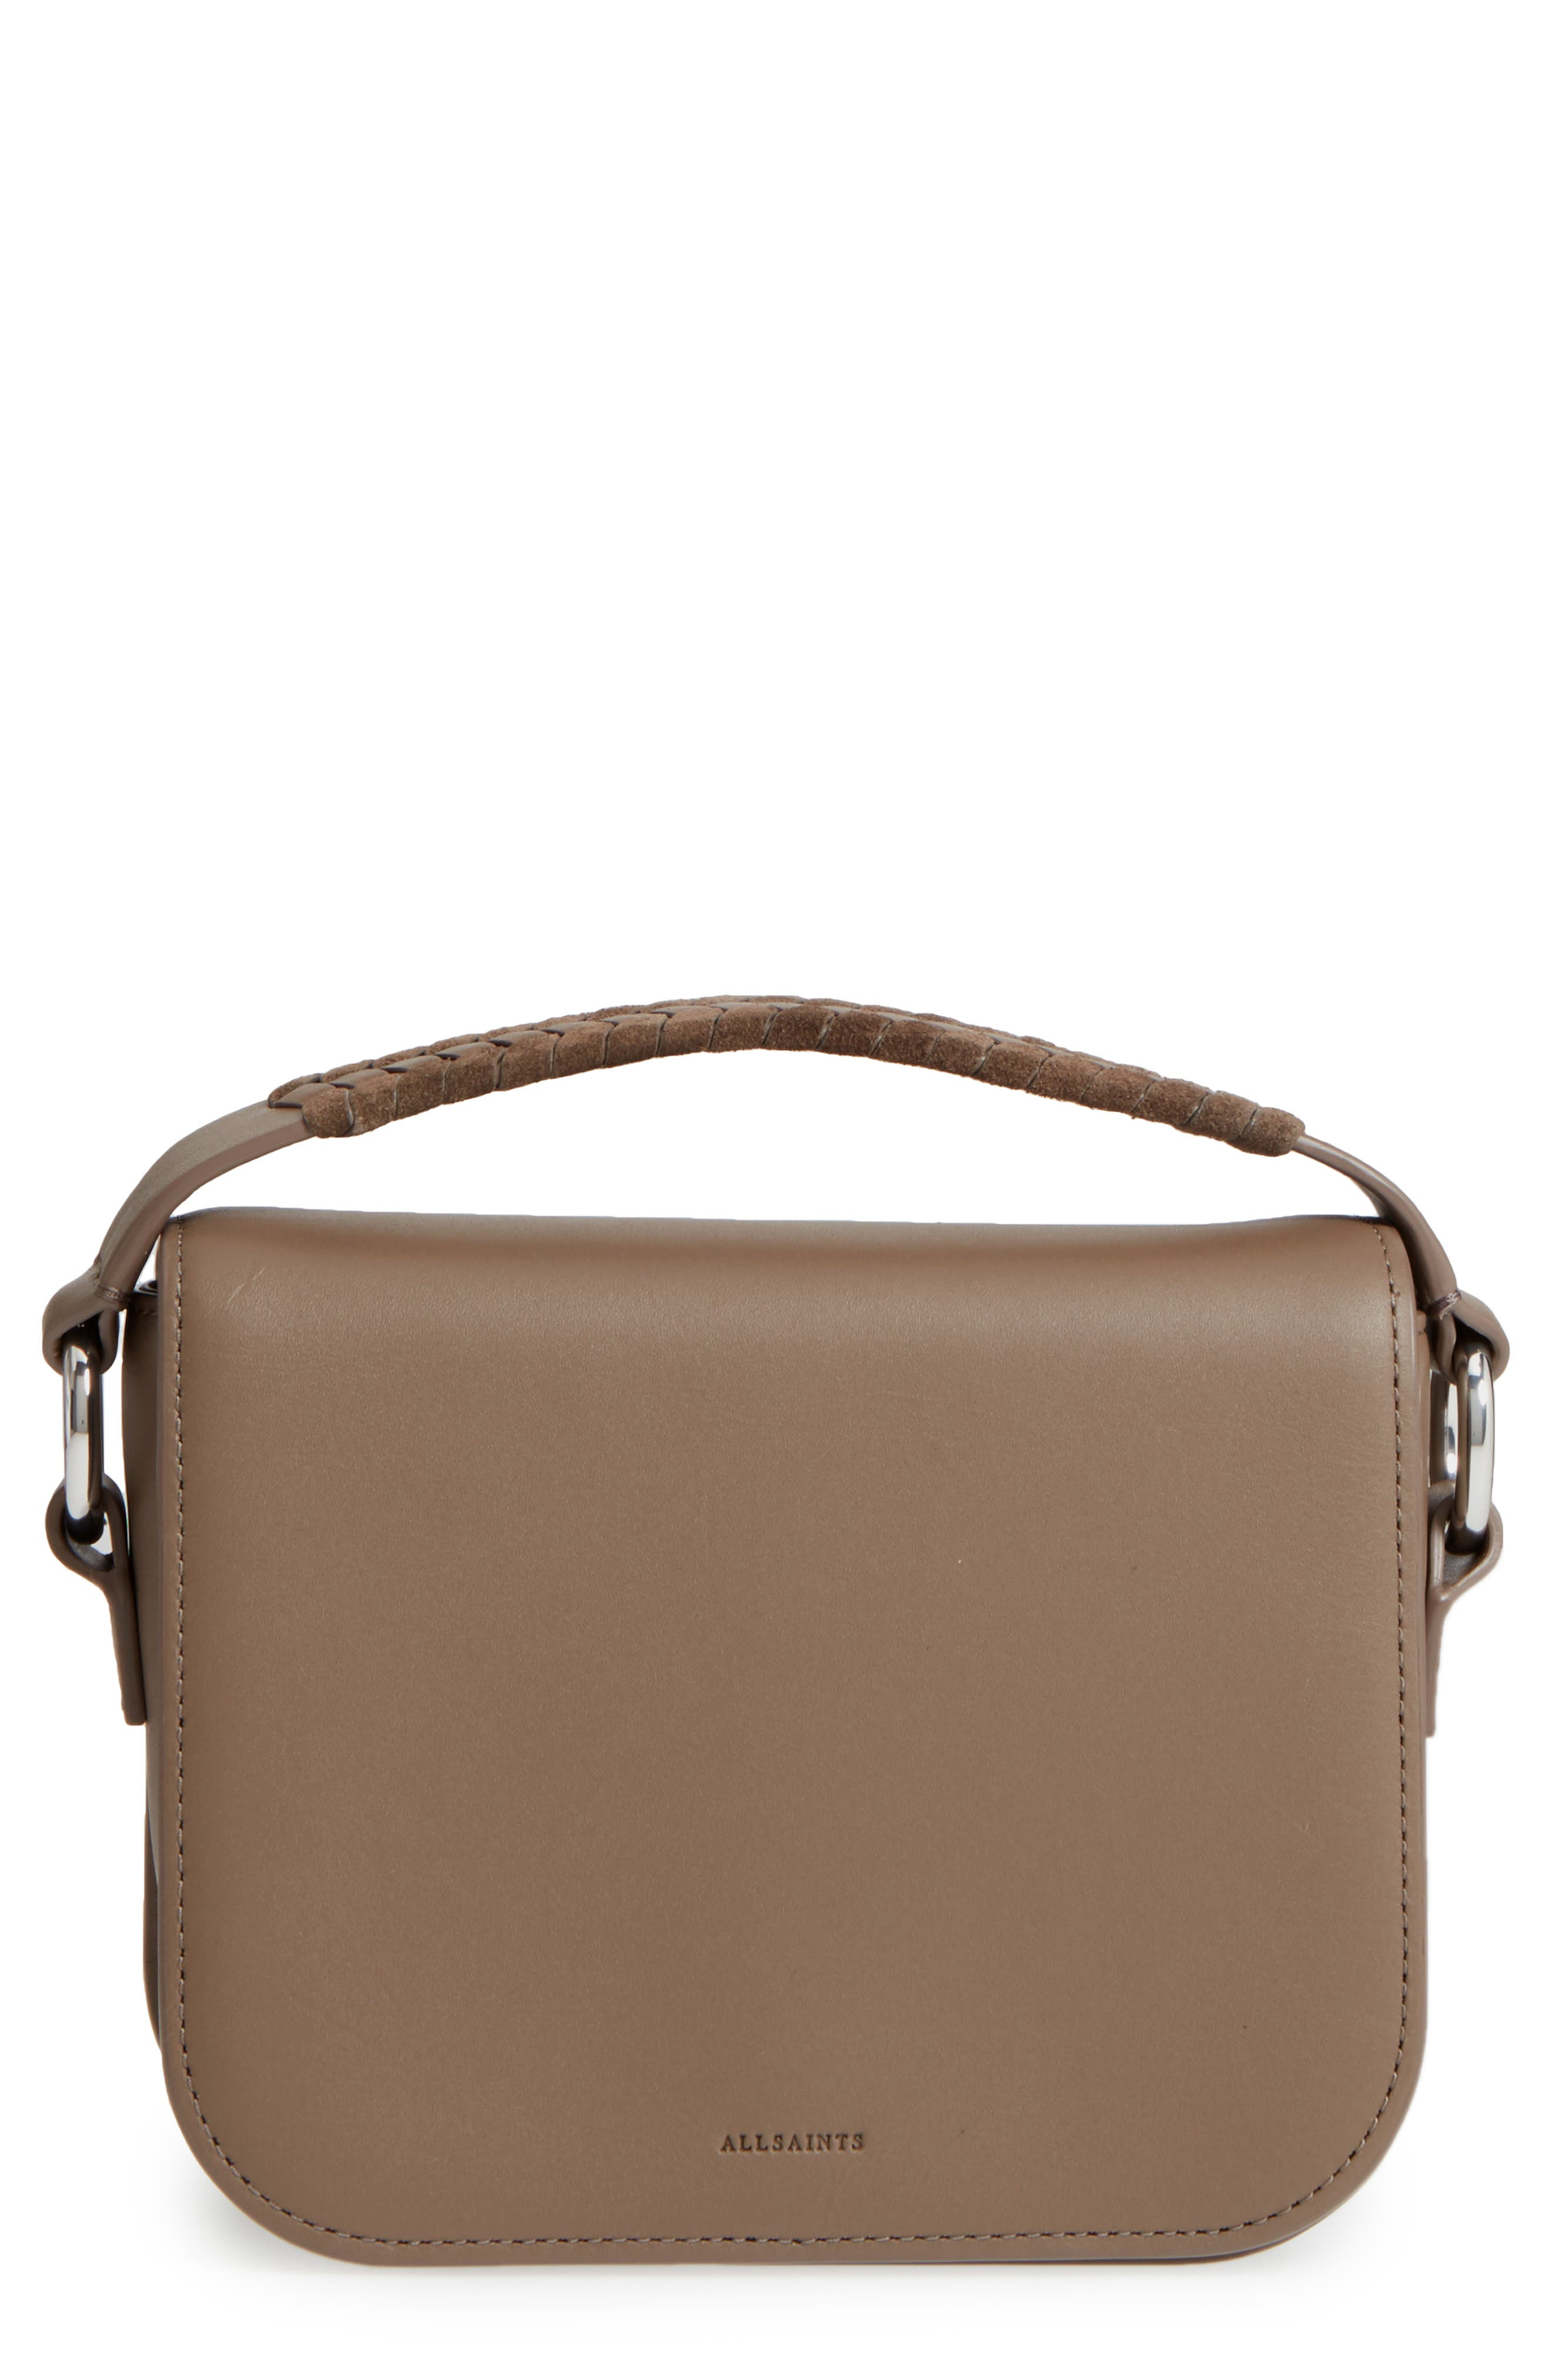 Ray Leather Clutch, Main, color, 200